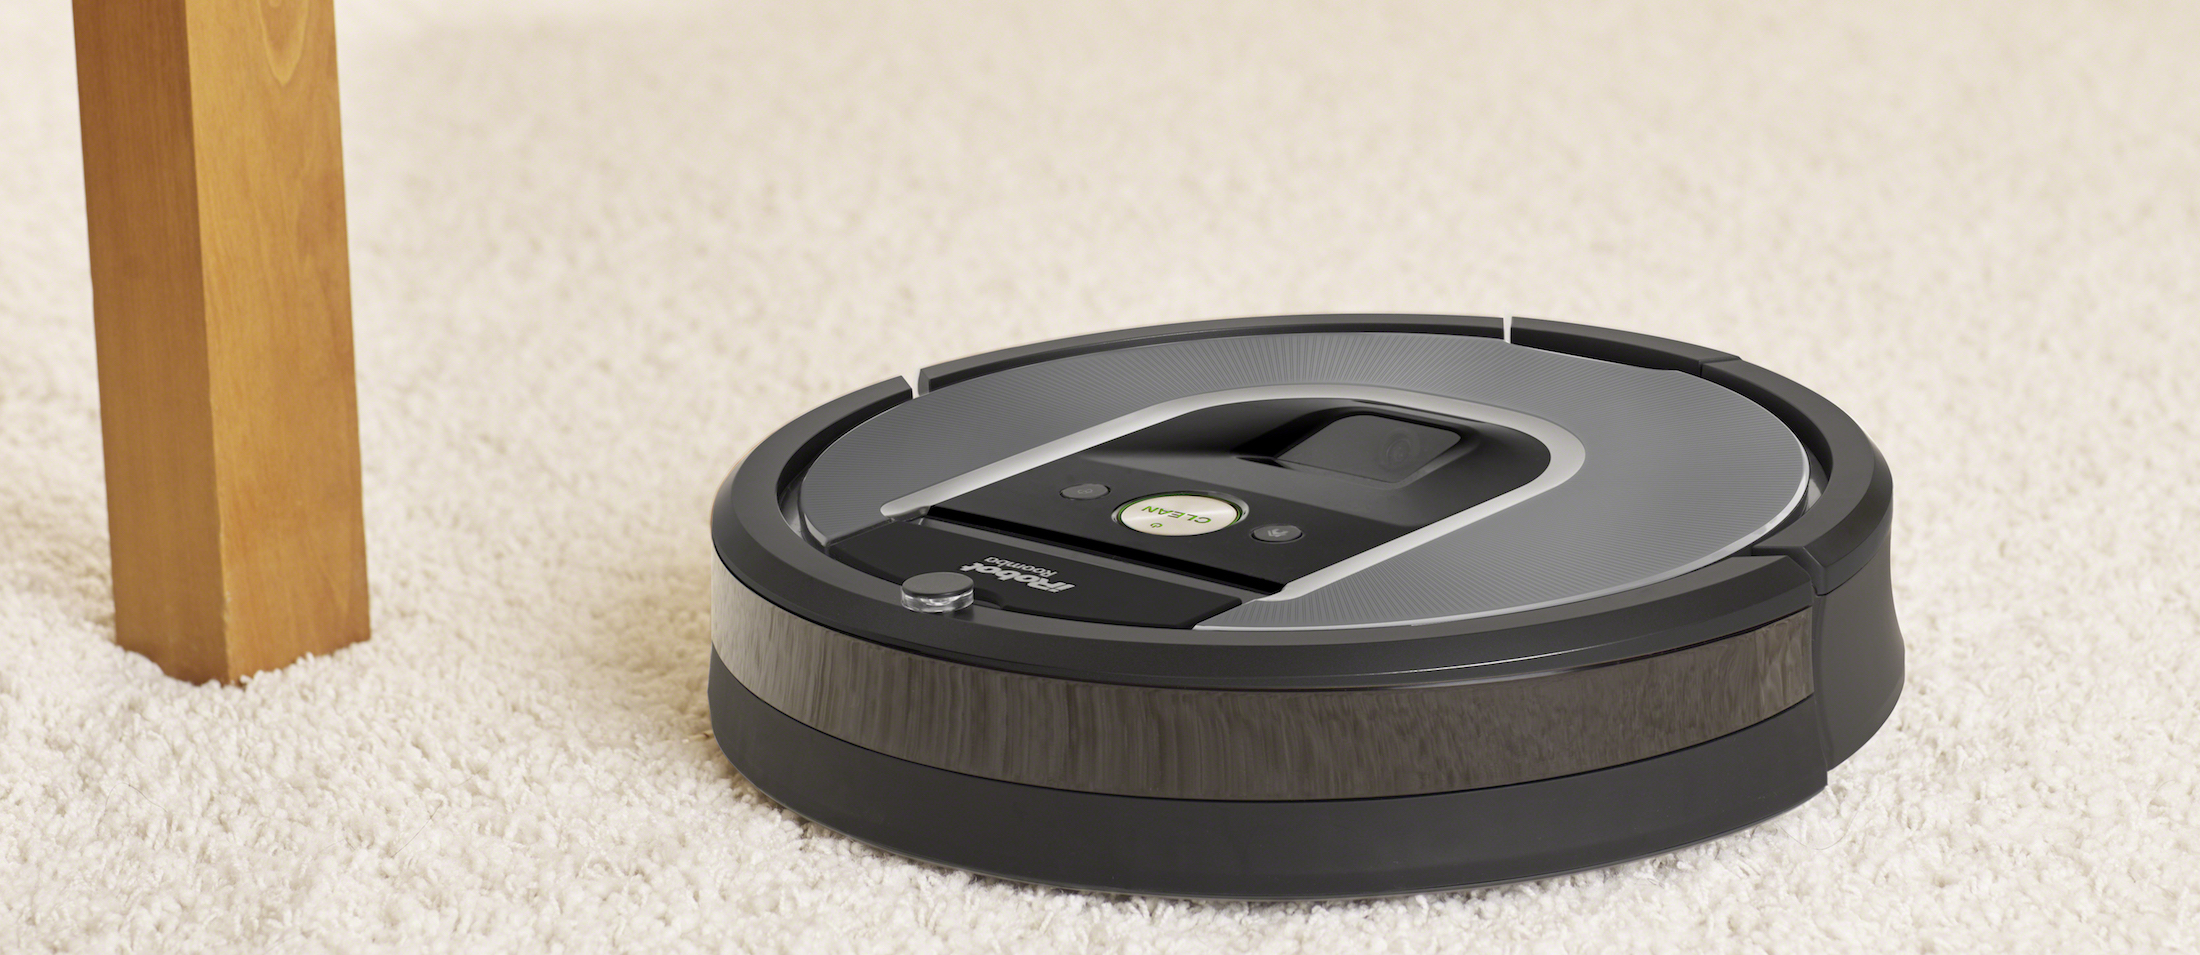 הגדול Meet the Roomba 960, iRobot's Affordable, Connected Vac - Reviewed FE-44